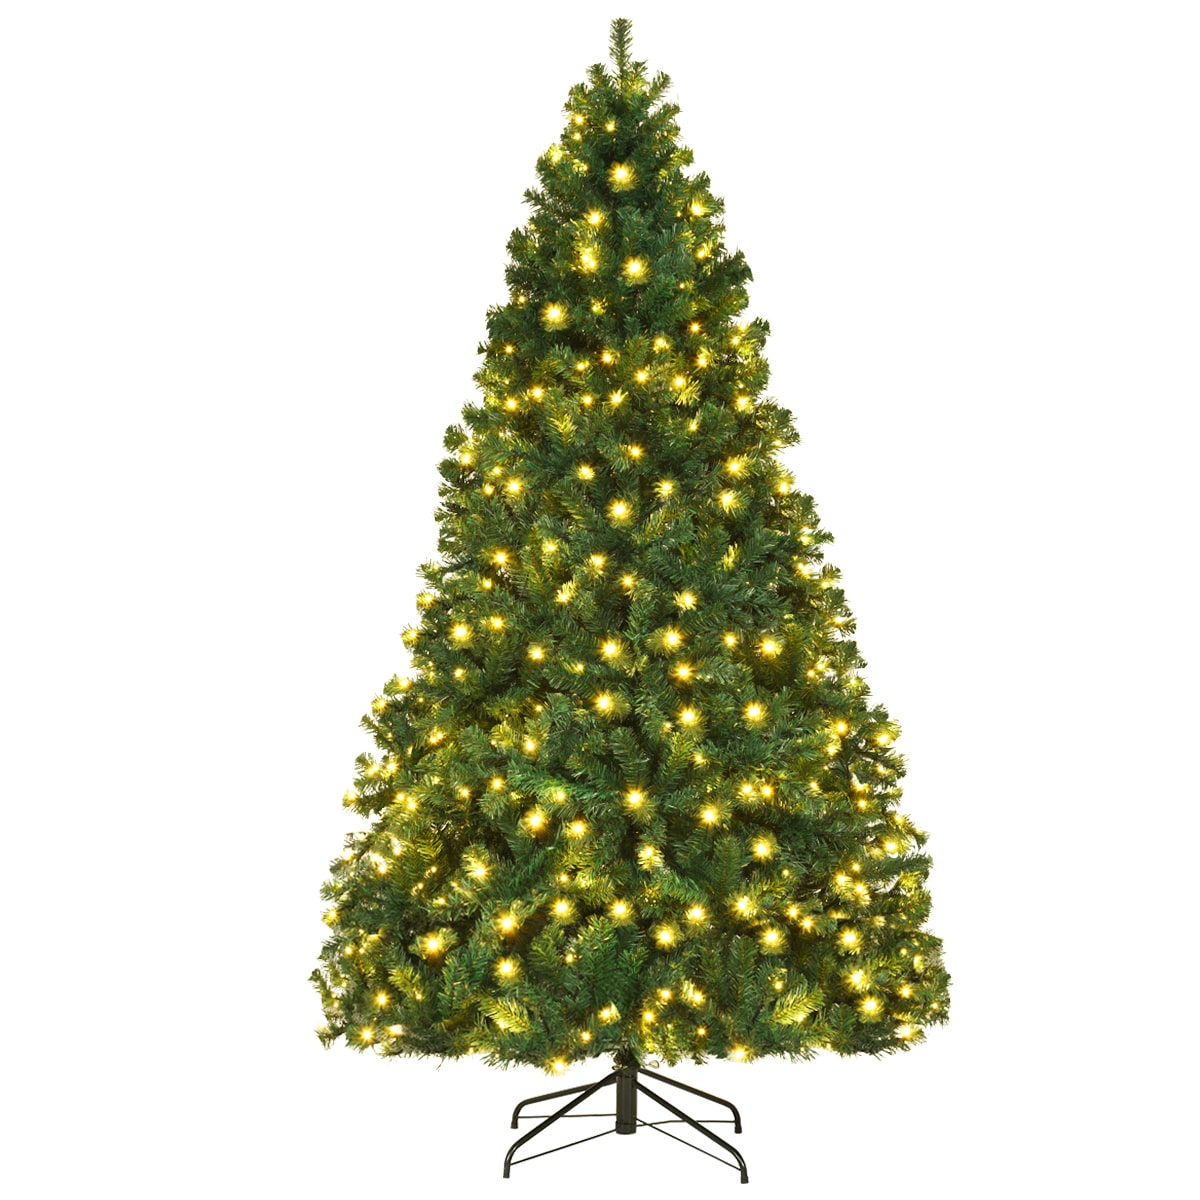 Costway 7.5Ft Pre-Lit PVC Christmas Tree Black Friday Deals